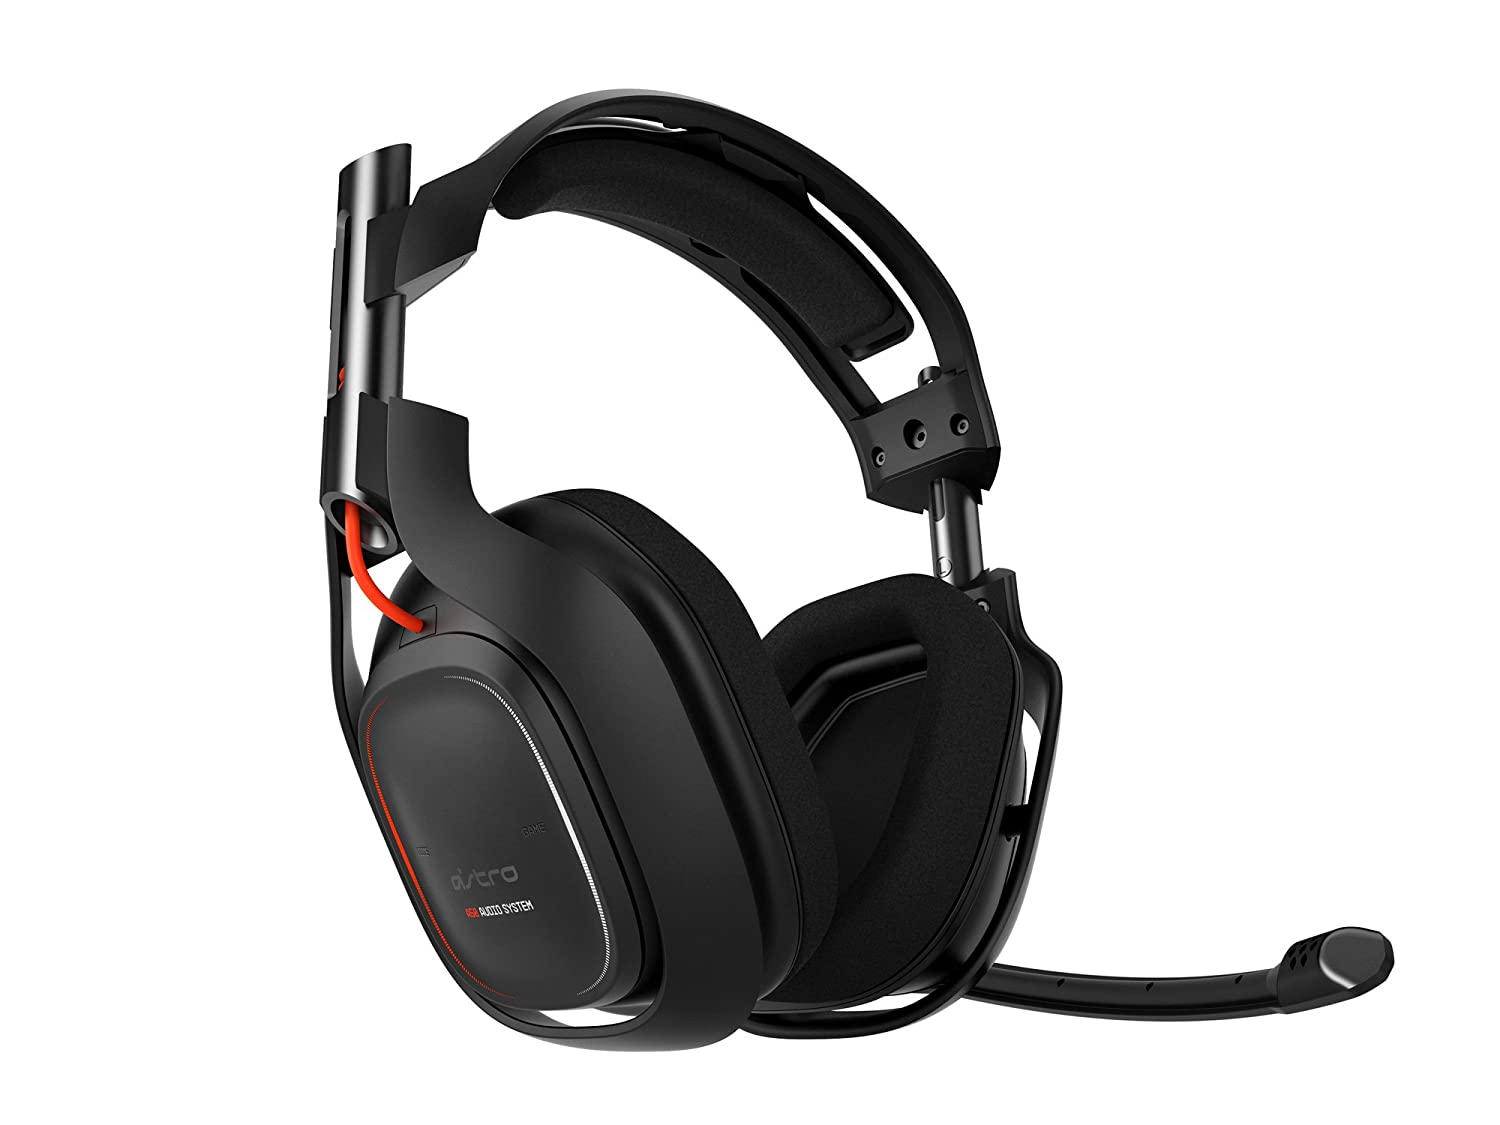 top 10 best gaming wireless headsets for pc and ps4. Black Bedroom Furniture Sets. Home Design Ideas